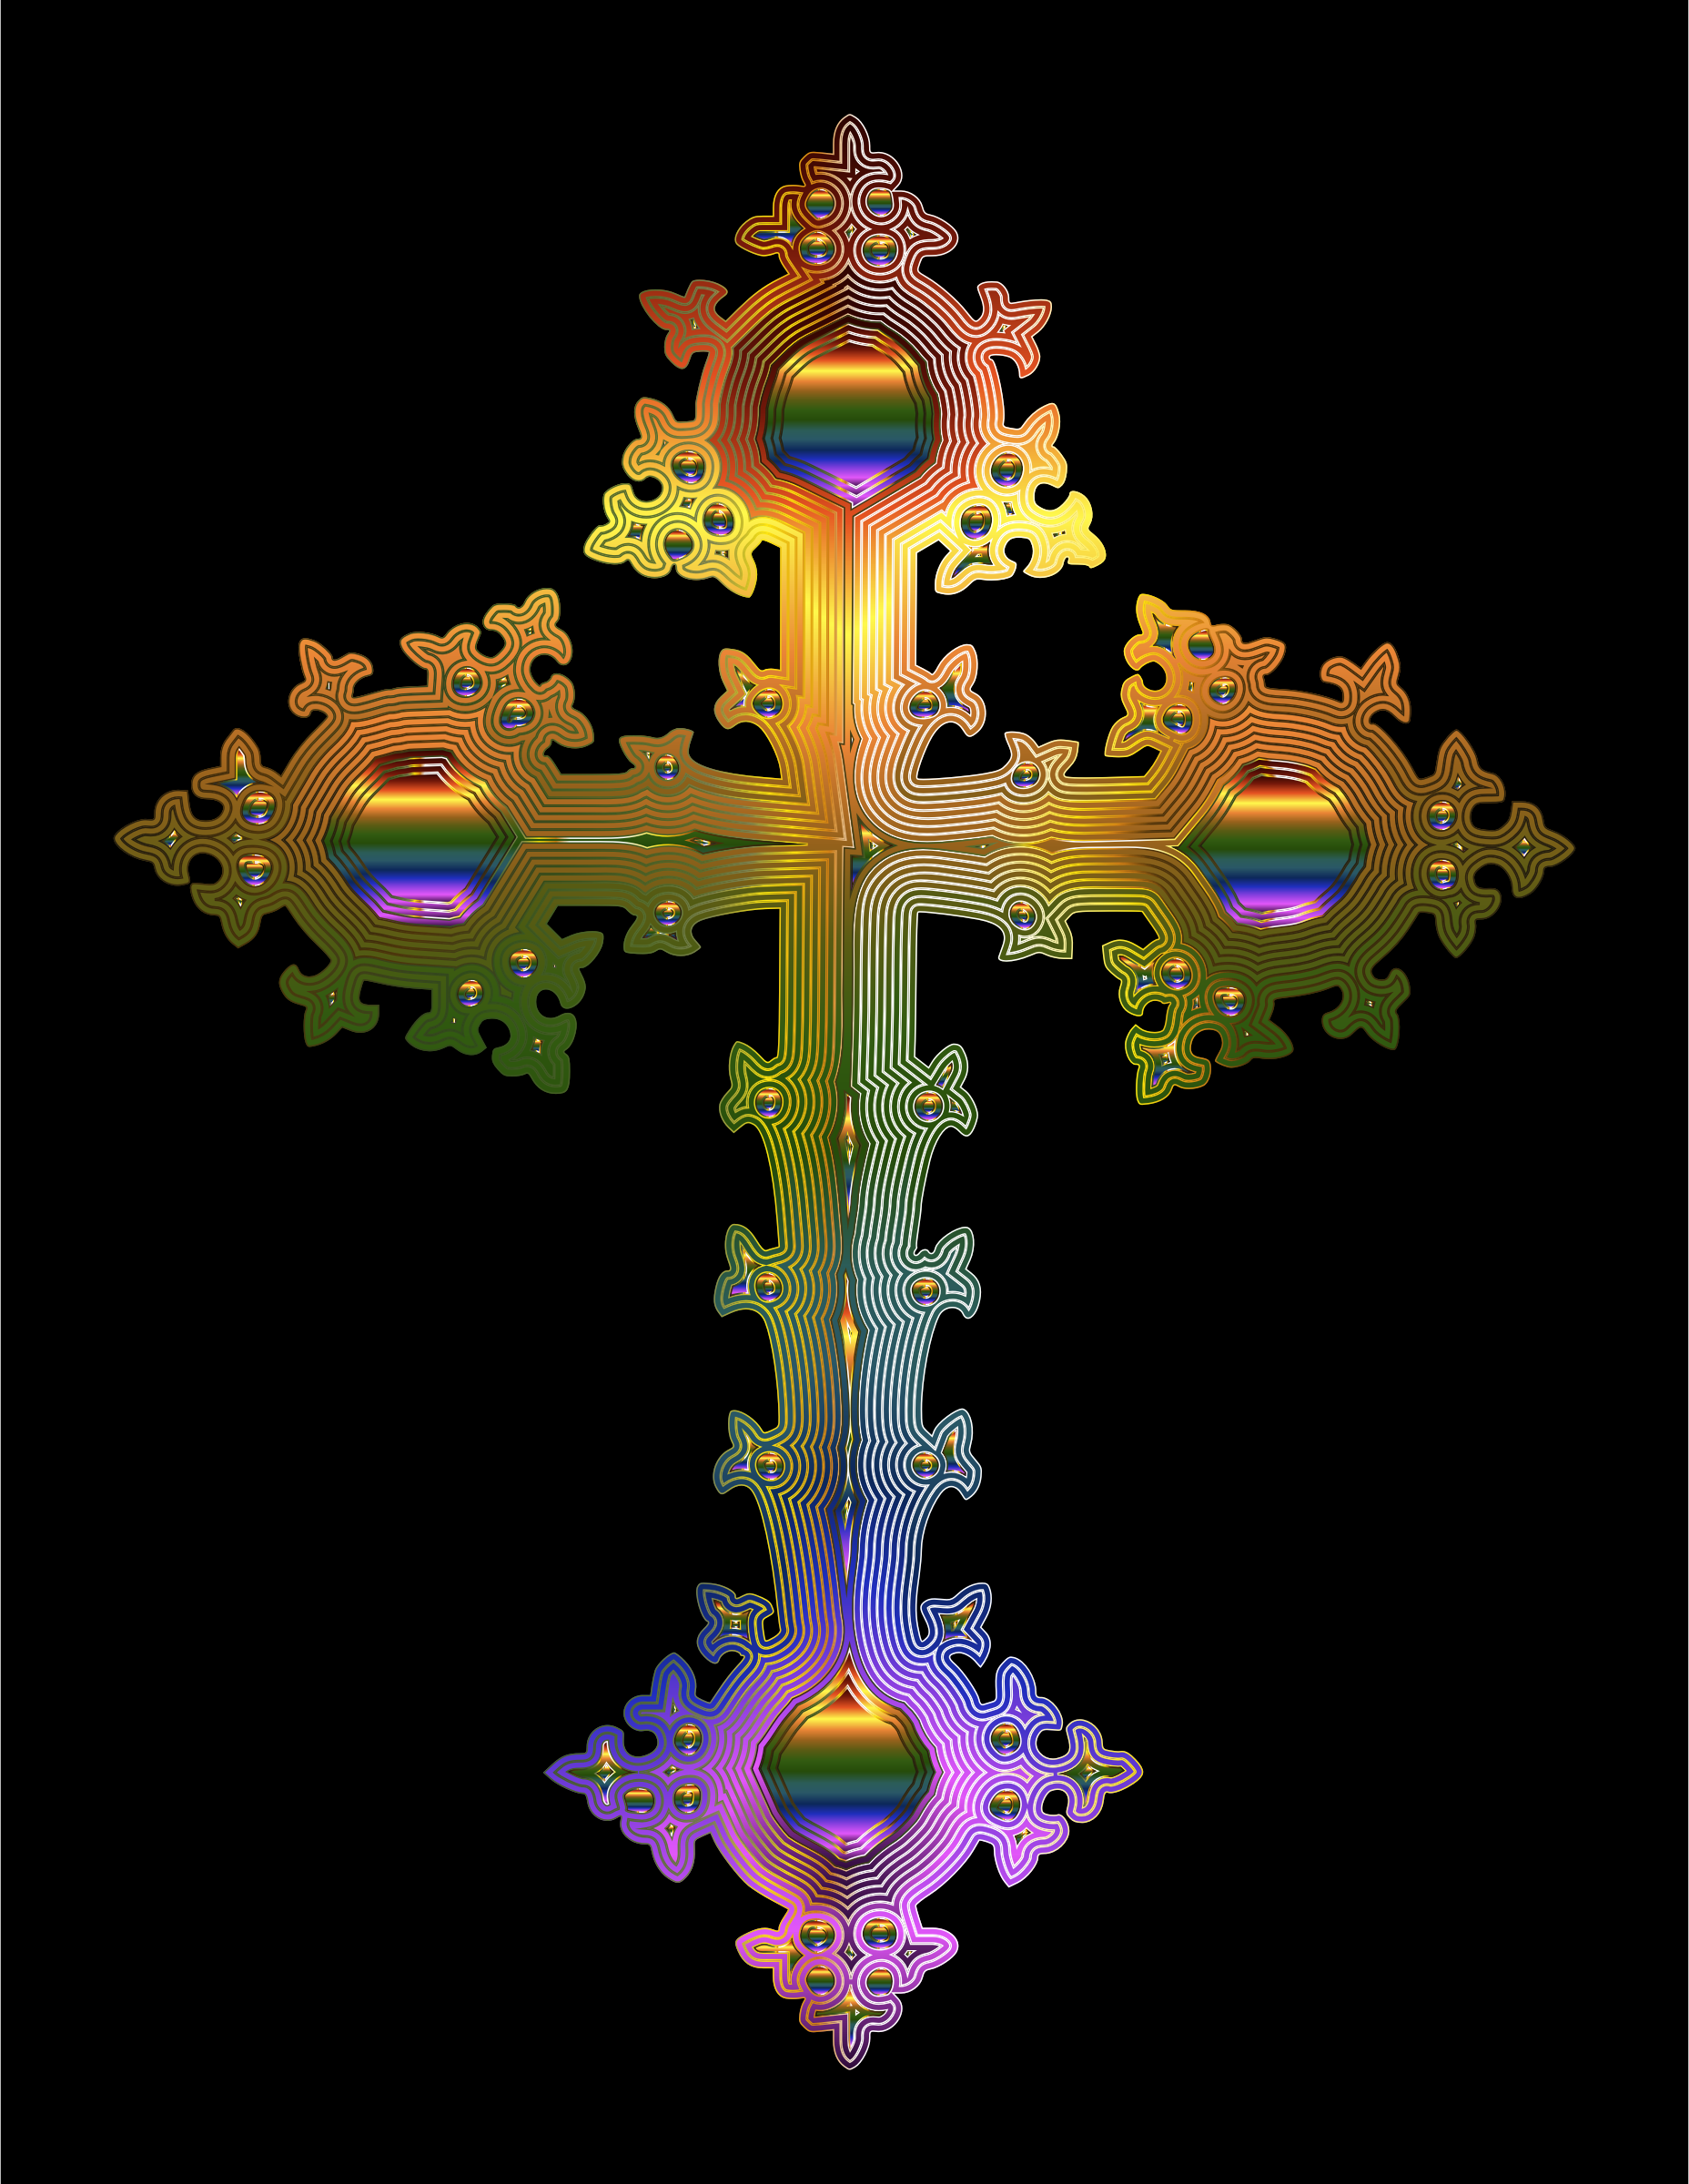 Prismatic Ornate Cross 2 by GDJ